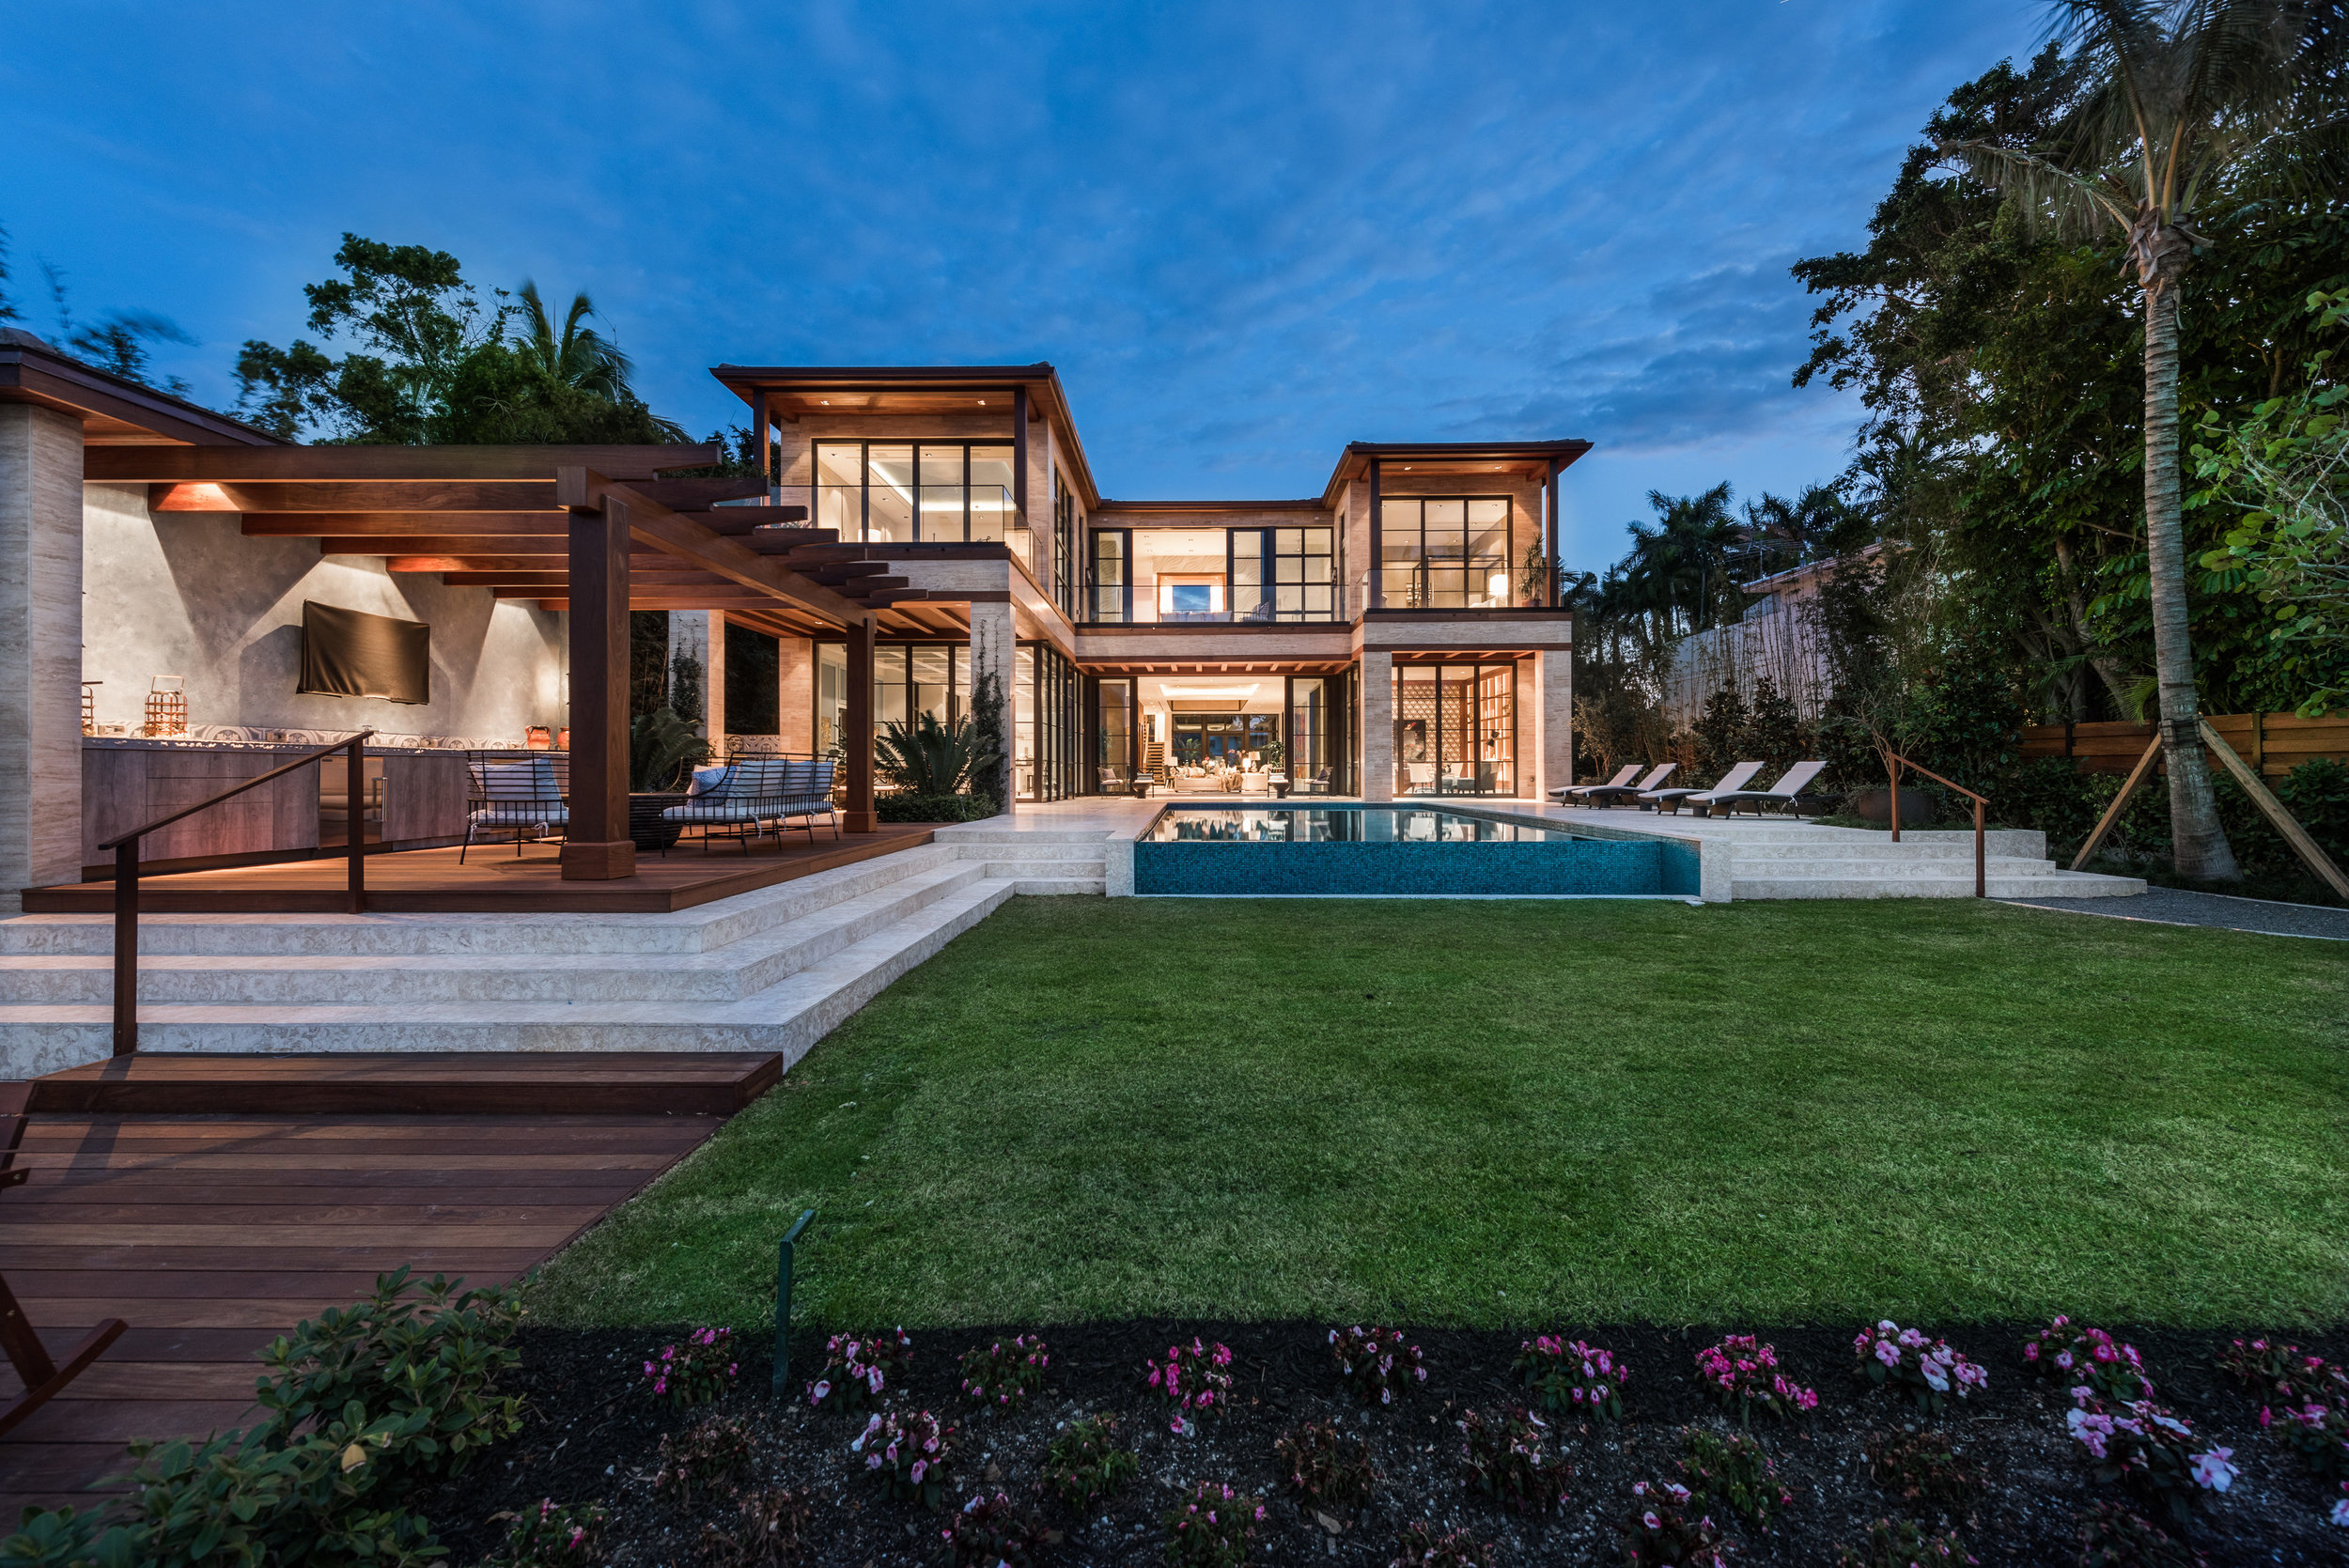 6010 N Bay Rd Miami Beach FL Explore This North Bay Estate Developed by Peter Fine Which Just Sold For $17 Million